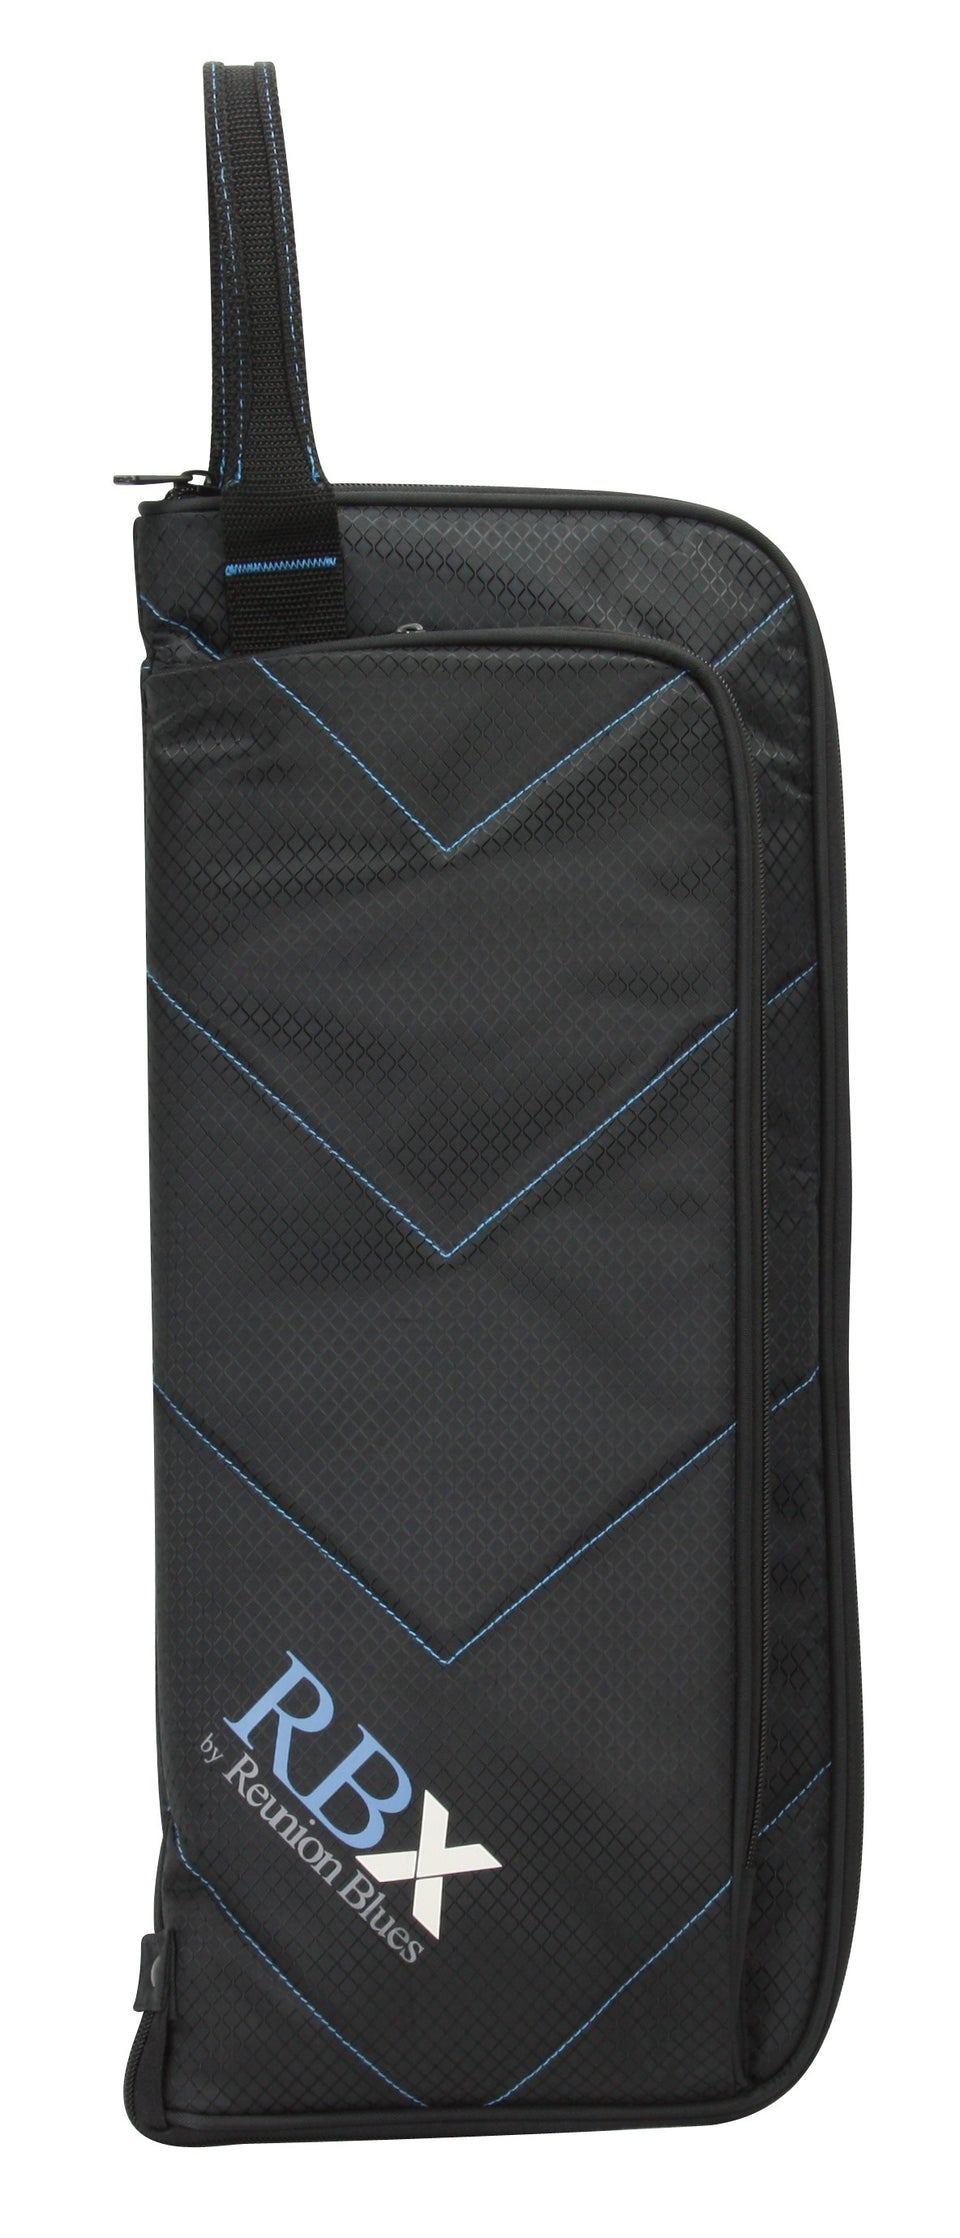 Reunion Blues RBX-SB1 Stick Bag